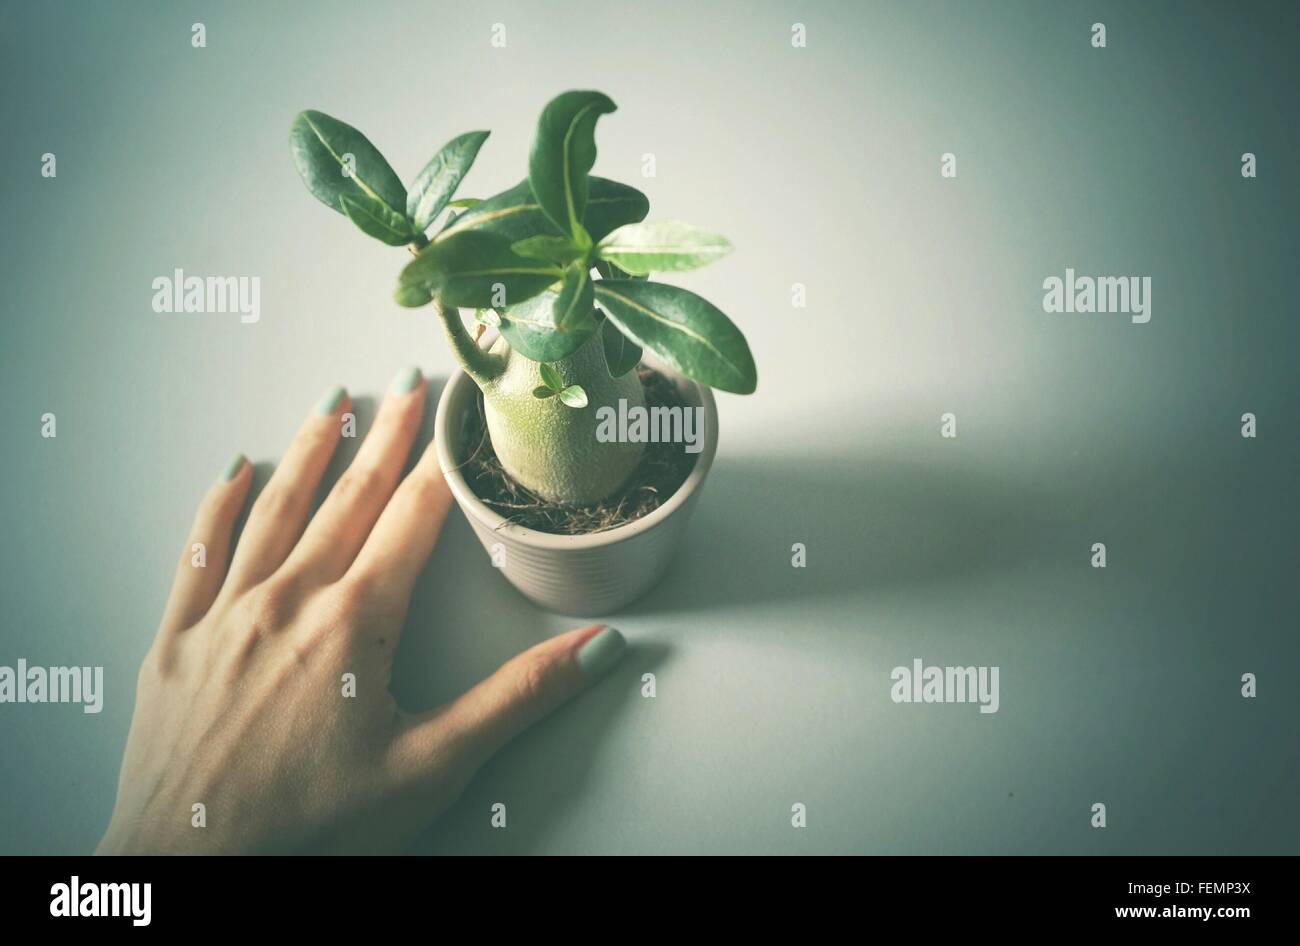 Elevated View Of Woman's Hand And Potted Plant - Stock Image